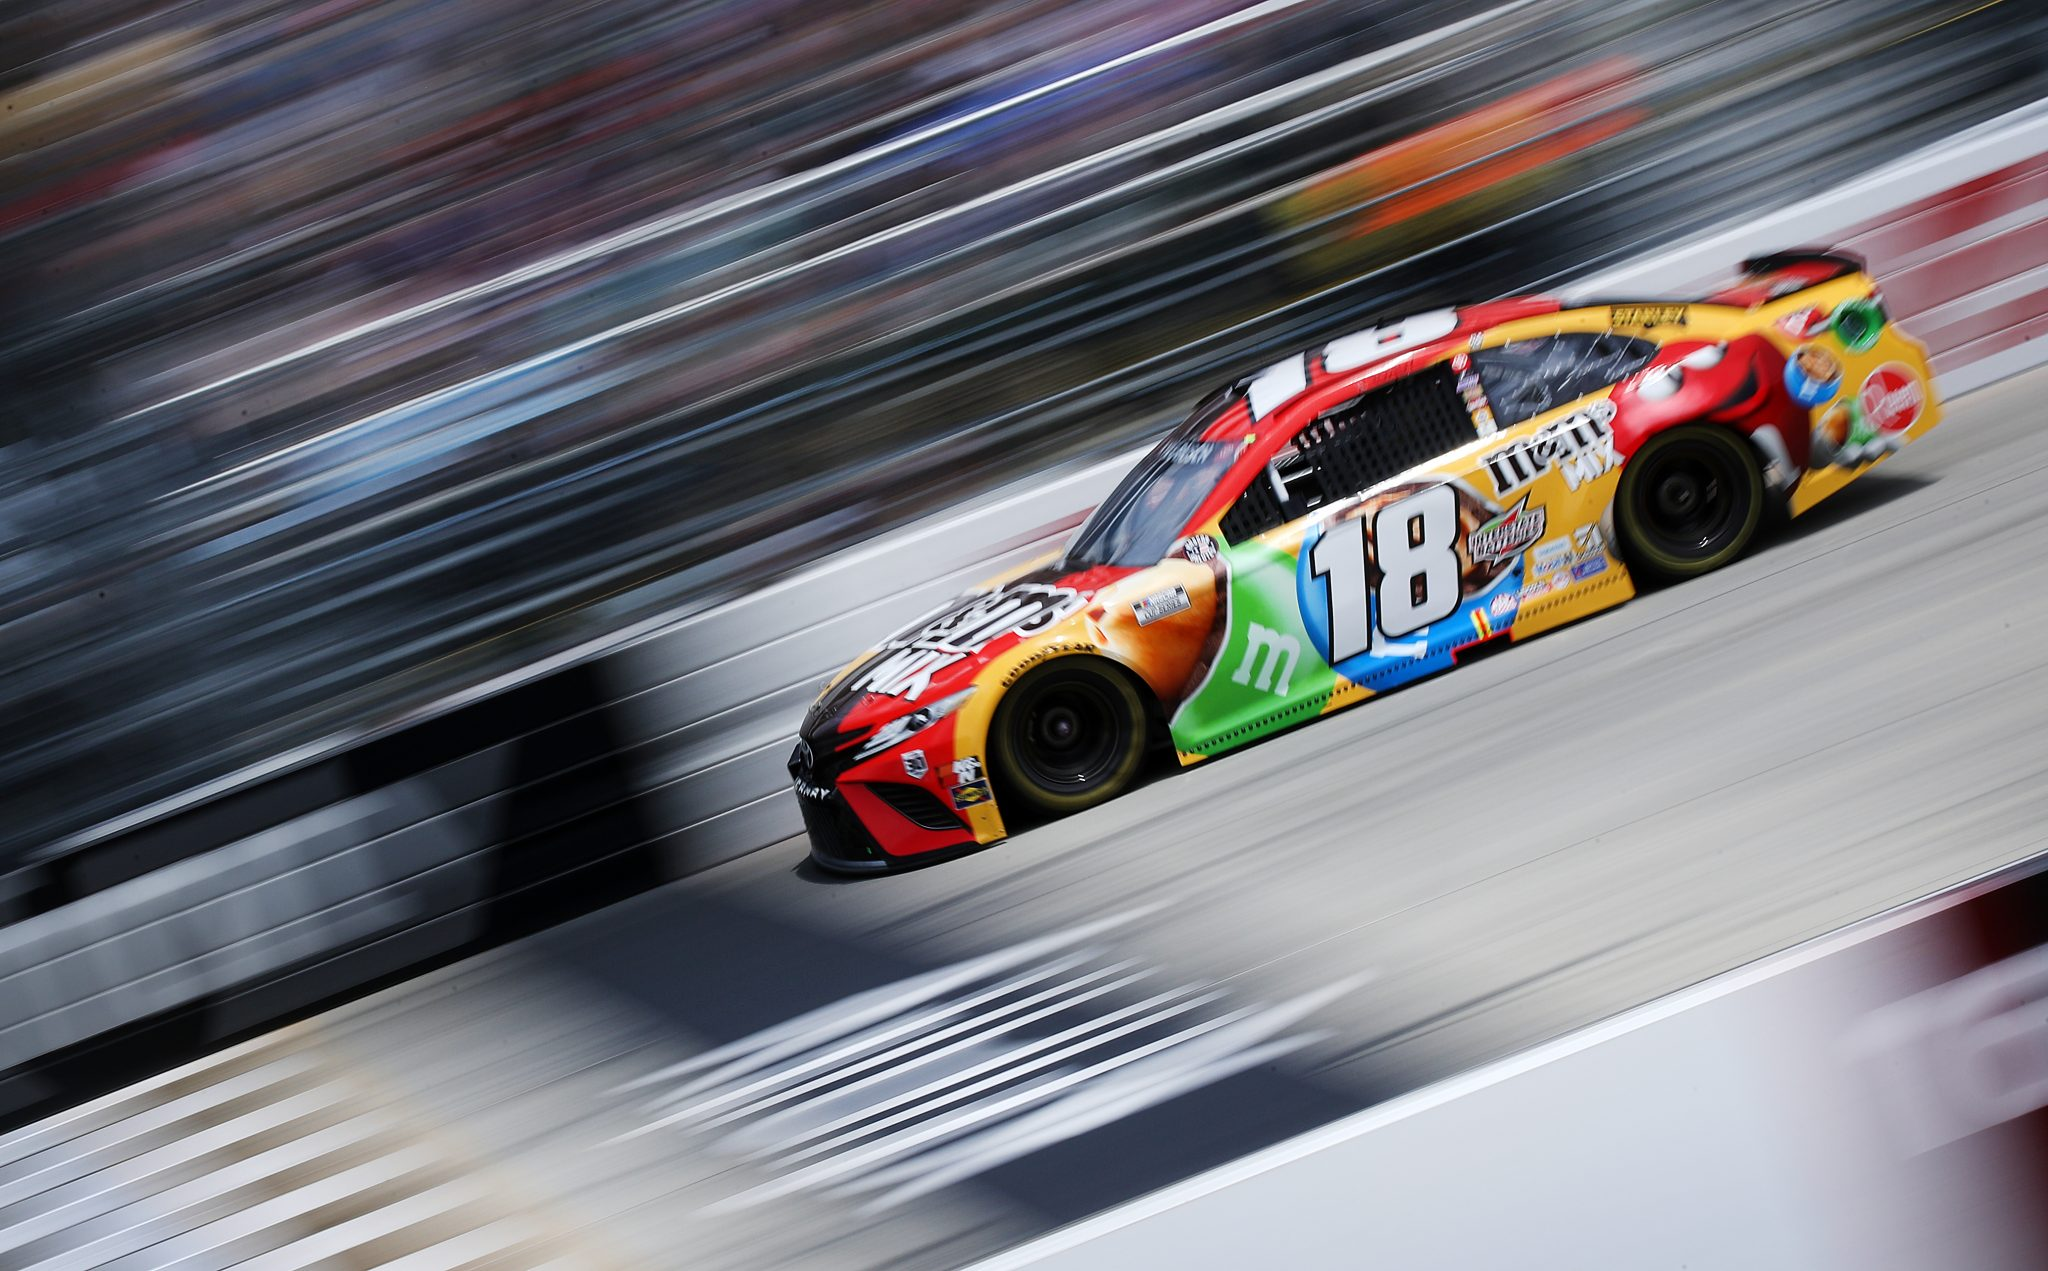 DOVER, DELAWARE - MAY 16: Kyle Busch, driver of the #18 M&M's Mix Toyota, races during the NASCAR Cup Series Drydene 400 at Dover International Speedway on May 16, 2021 in Dover, Delaware. (Photo by Sean Gardner/Getty Images) | Getty Images